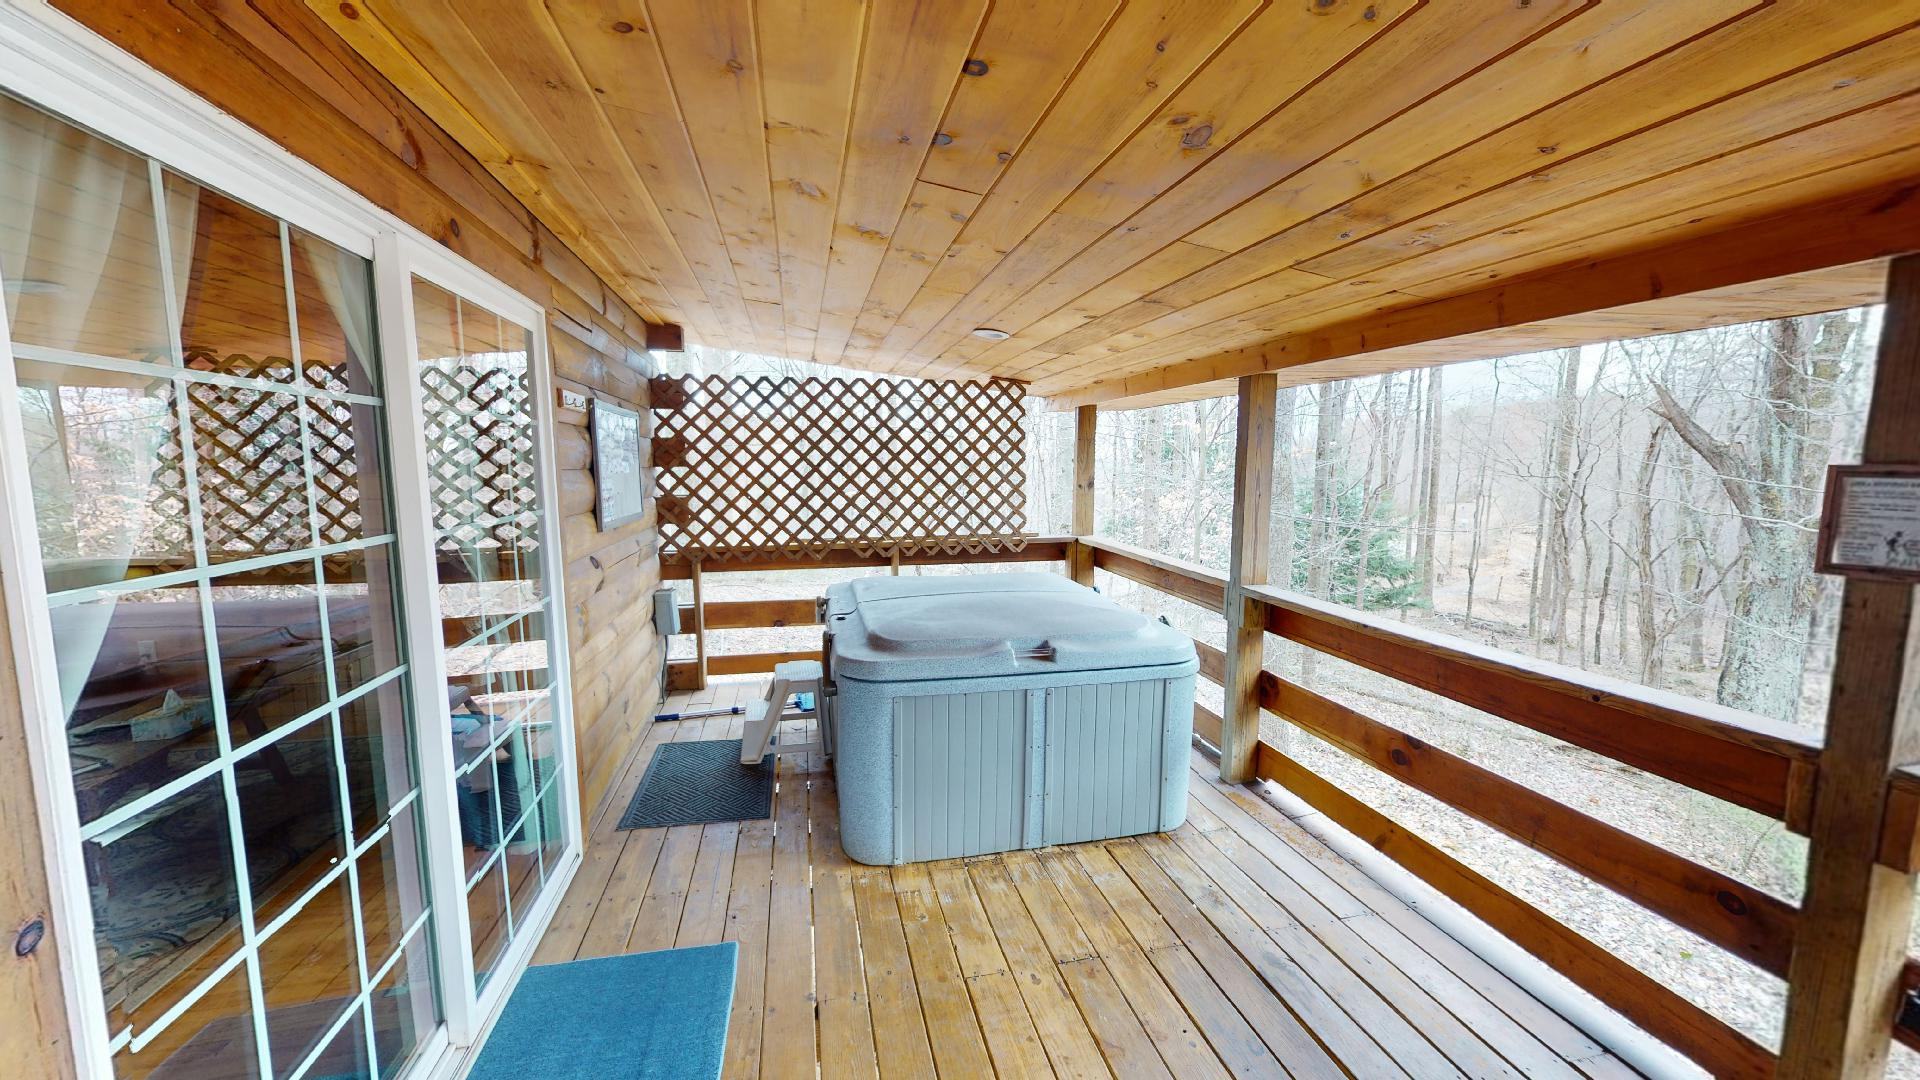 Photo 663_9210.jpg - Private 2 person hot tub on back porch.